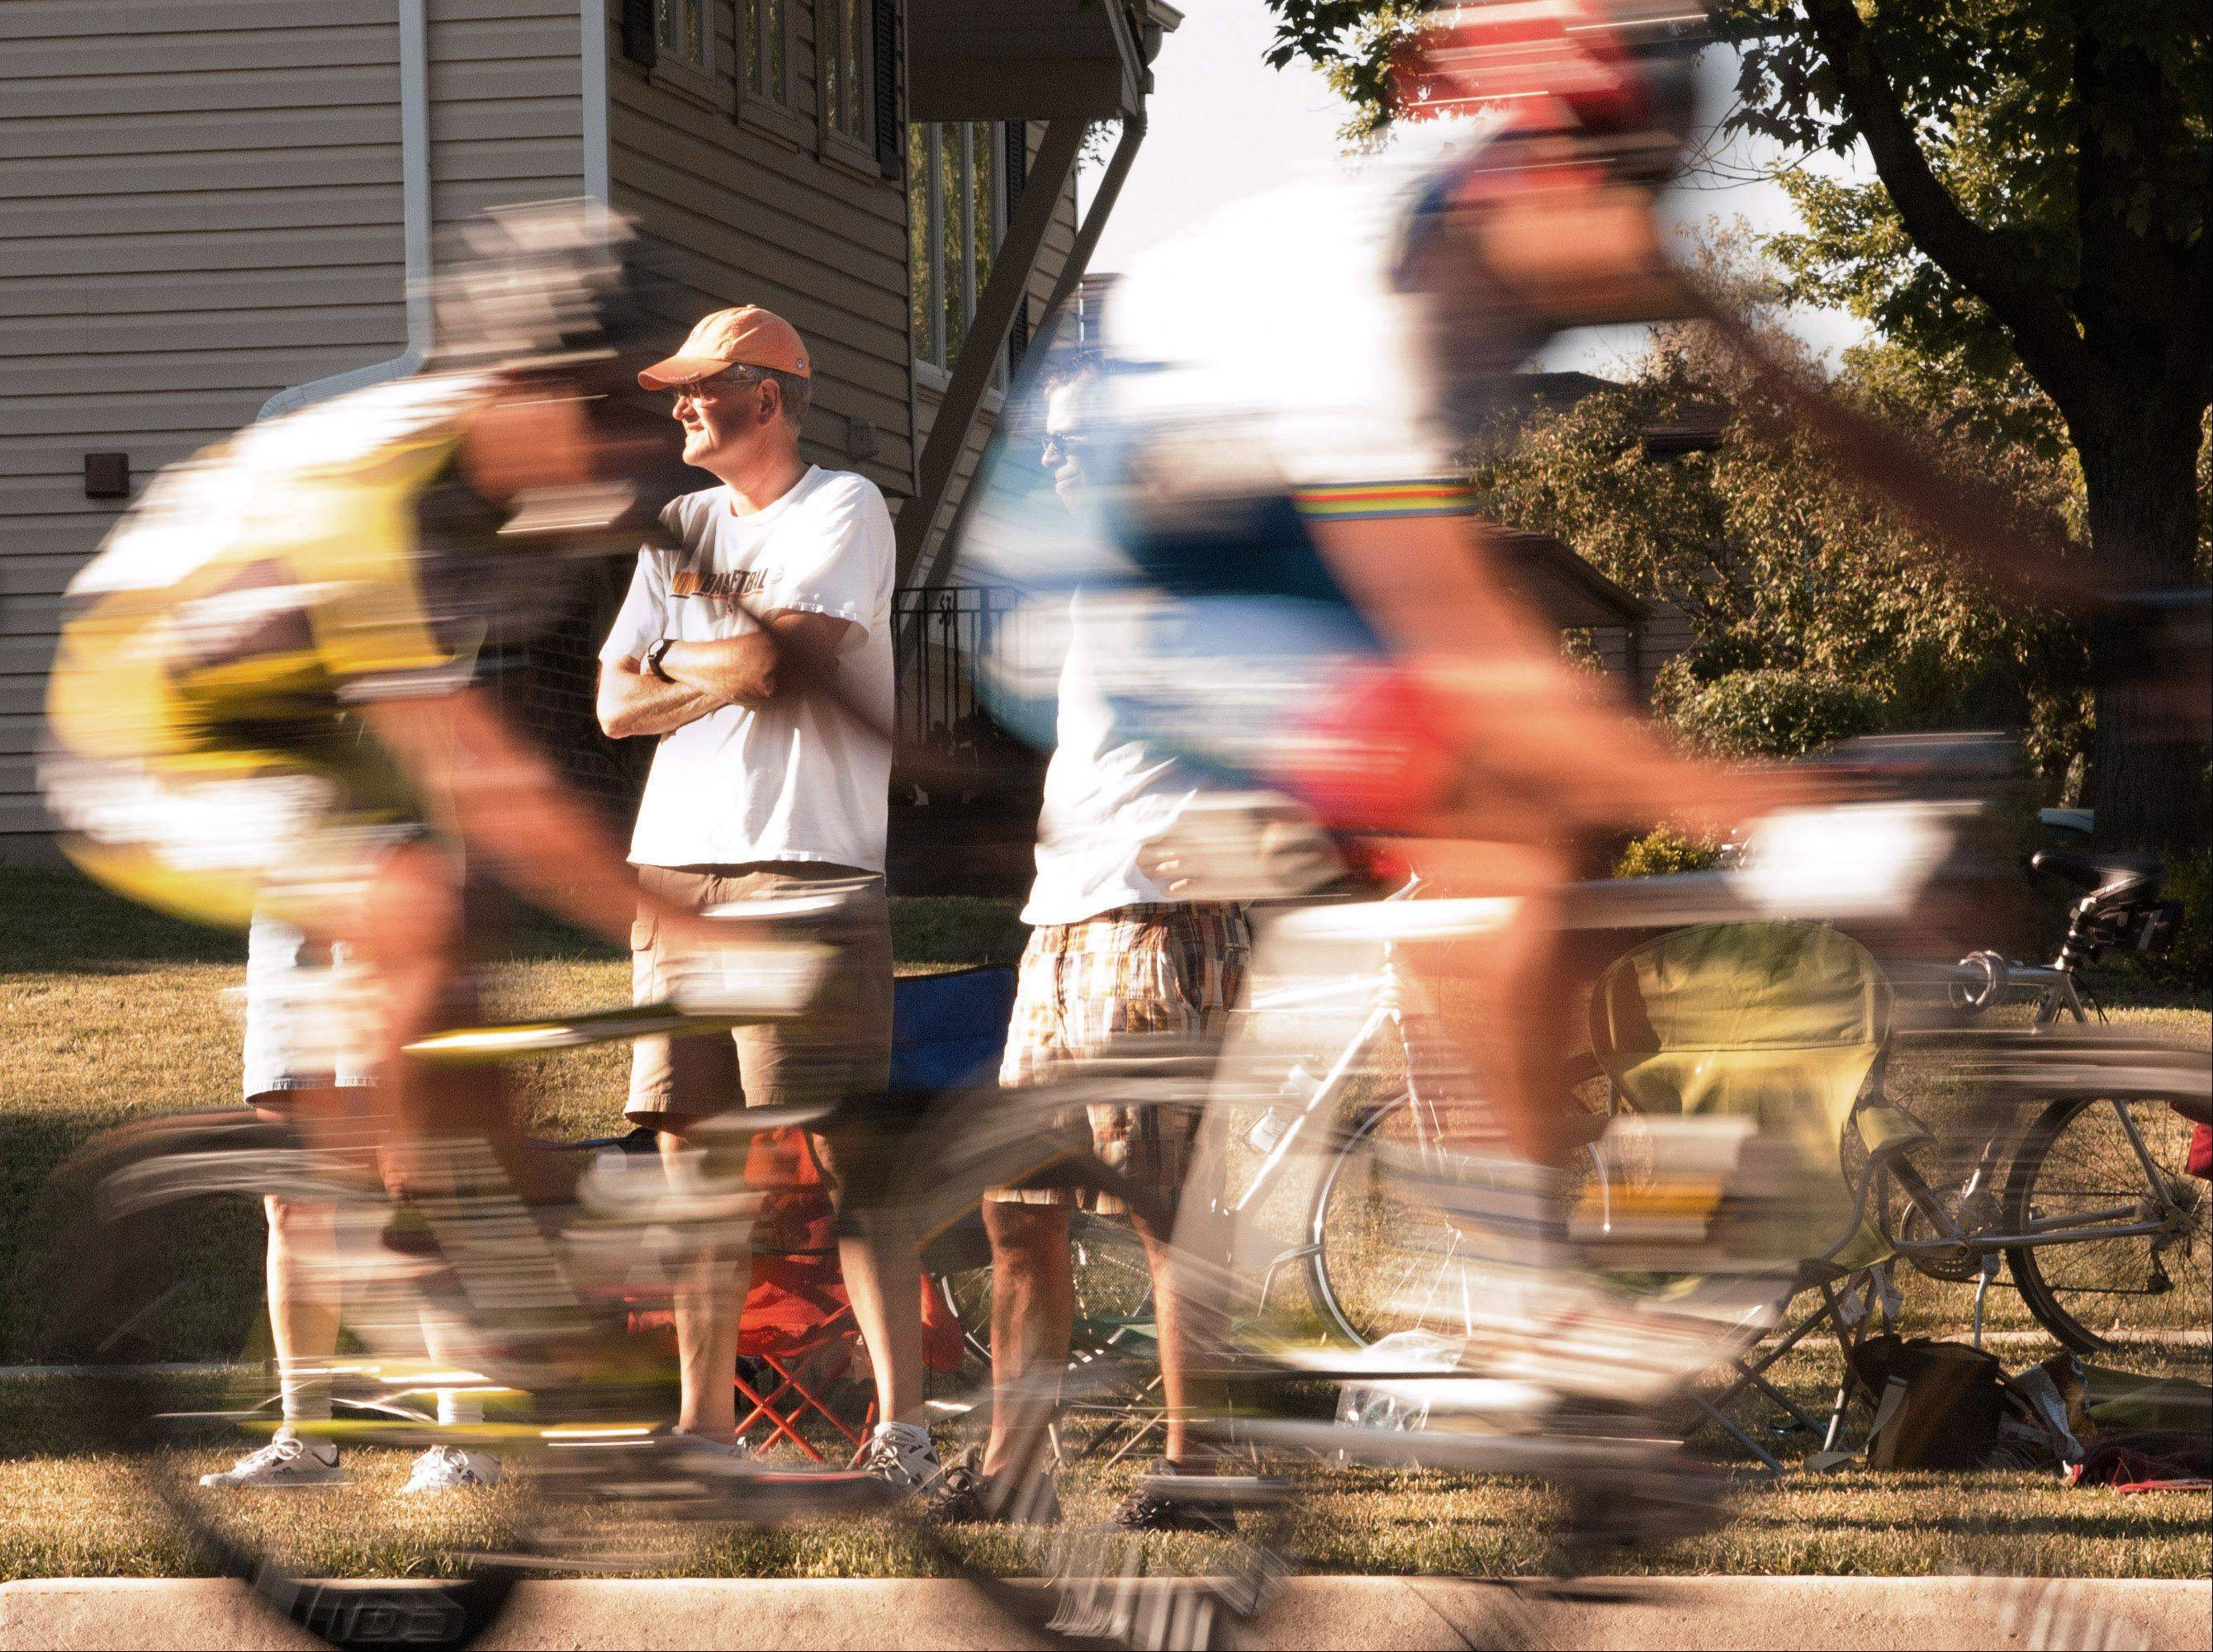 A spectator watches as pro cyclists fly by during the Tour of Elk Grove at the corner of Weathersfield Way and Cedarcrest Drive in Schaumburg in 2008. Riders reached speeds close to 30 miles an hour.